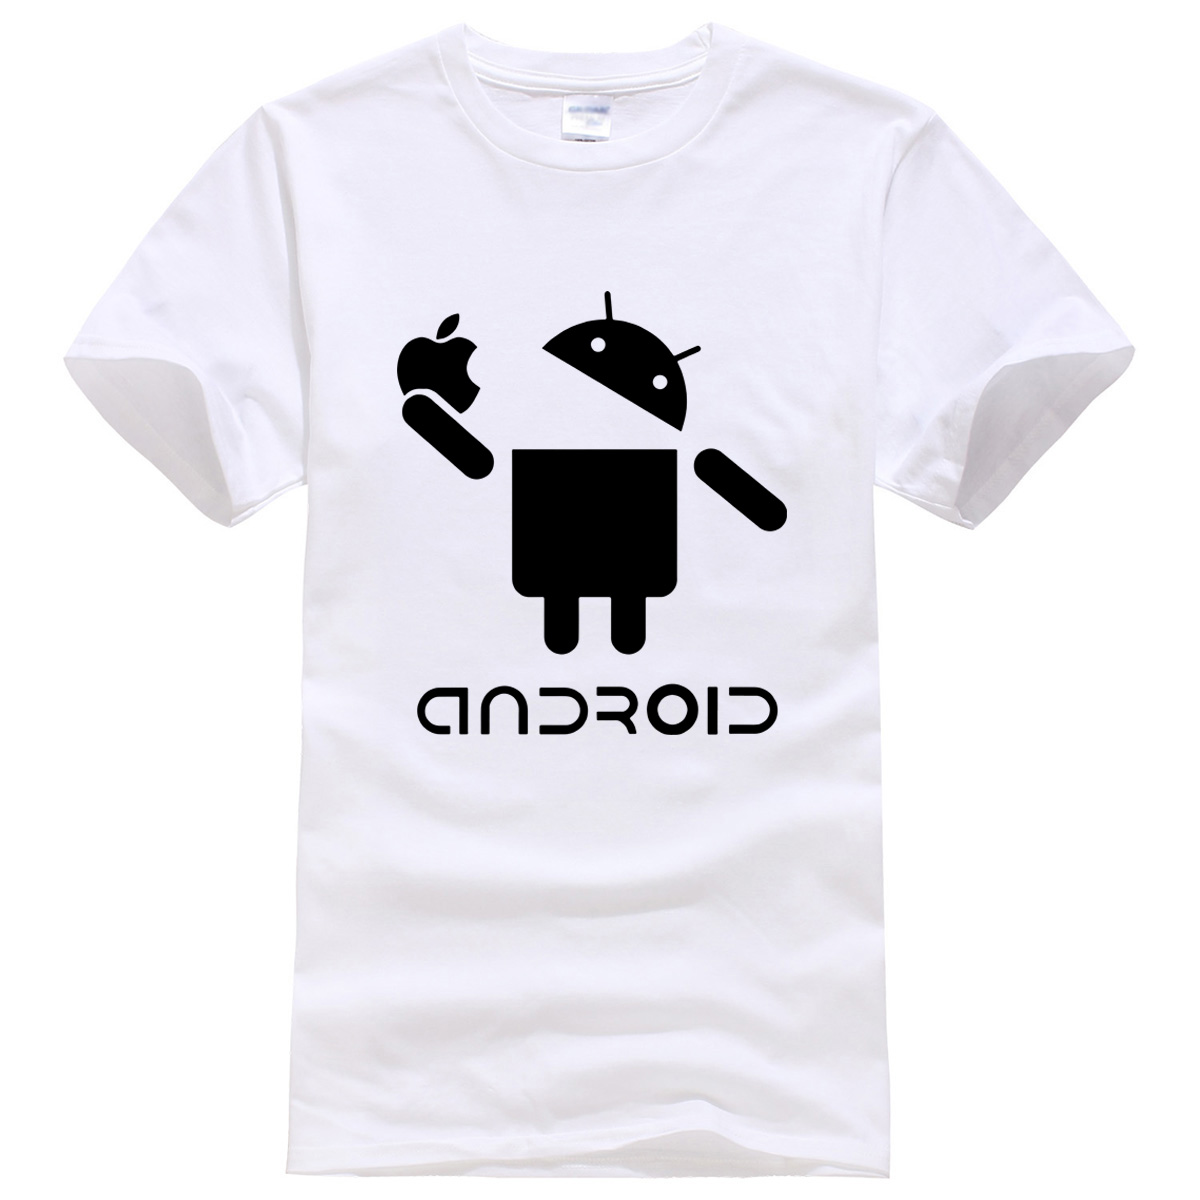 Android character pattern summer 2019 T-shirt cotton new hot sale men's T-shirts fashion casual t shirt harajuku crossfit brand